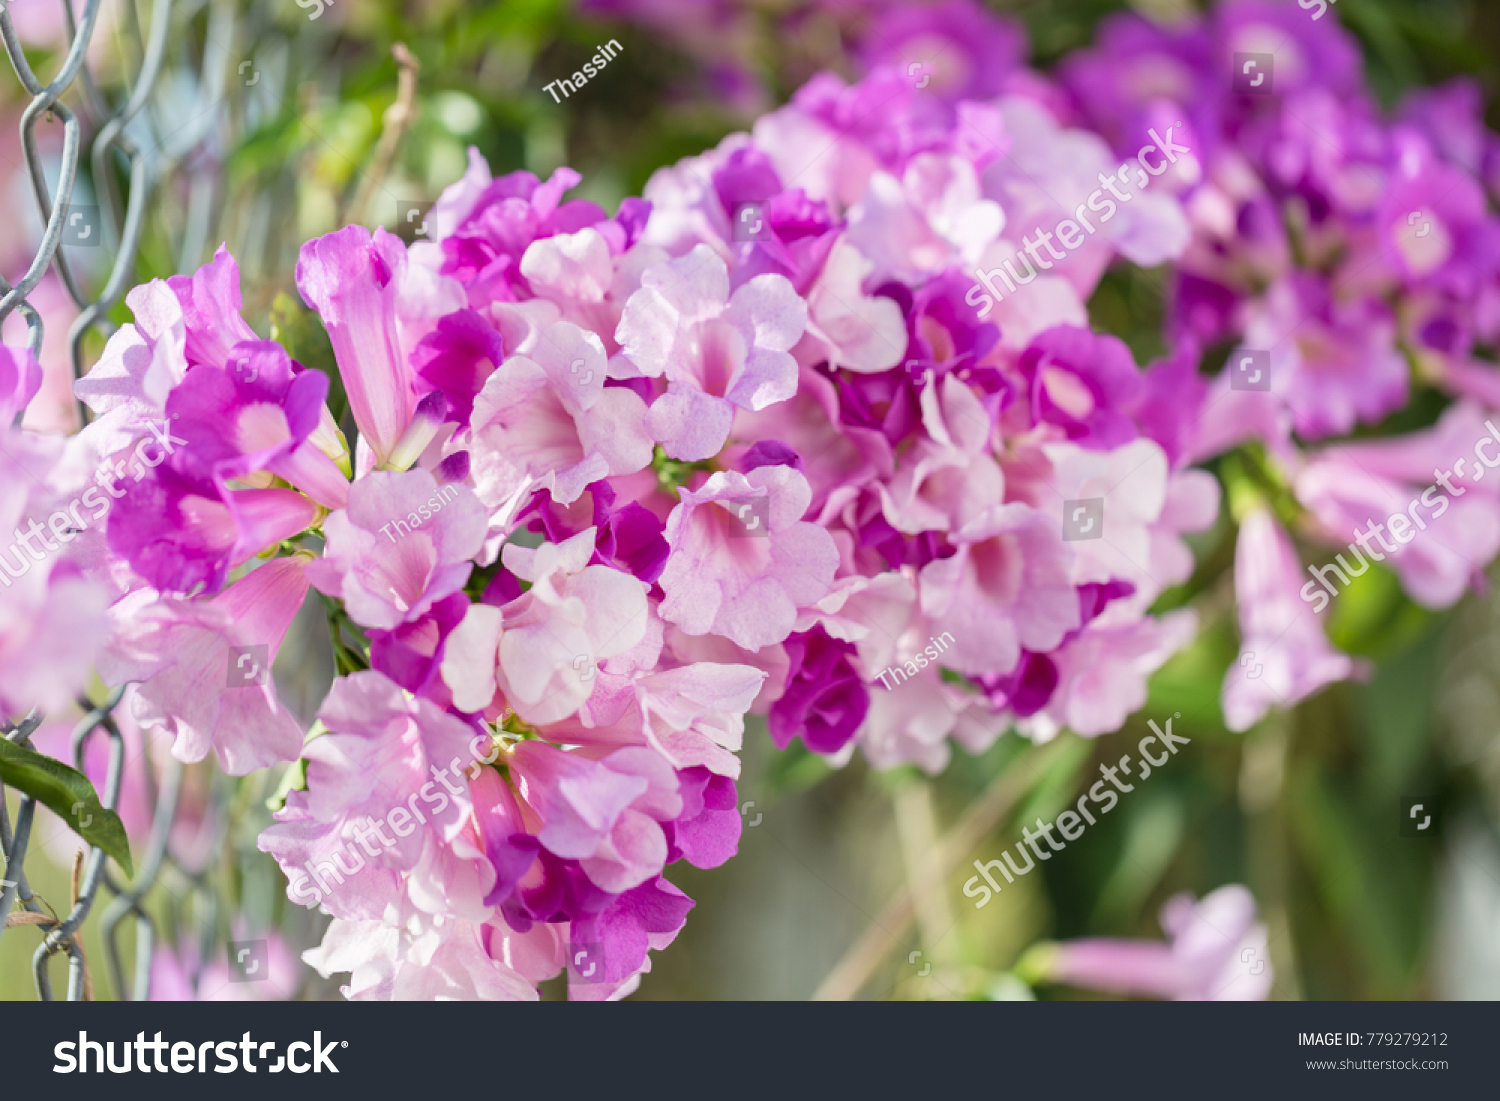 Close Up Of Light Purple Statice Flowers In Springtime Natural